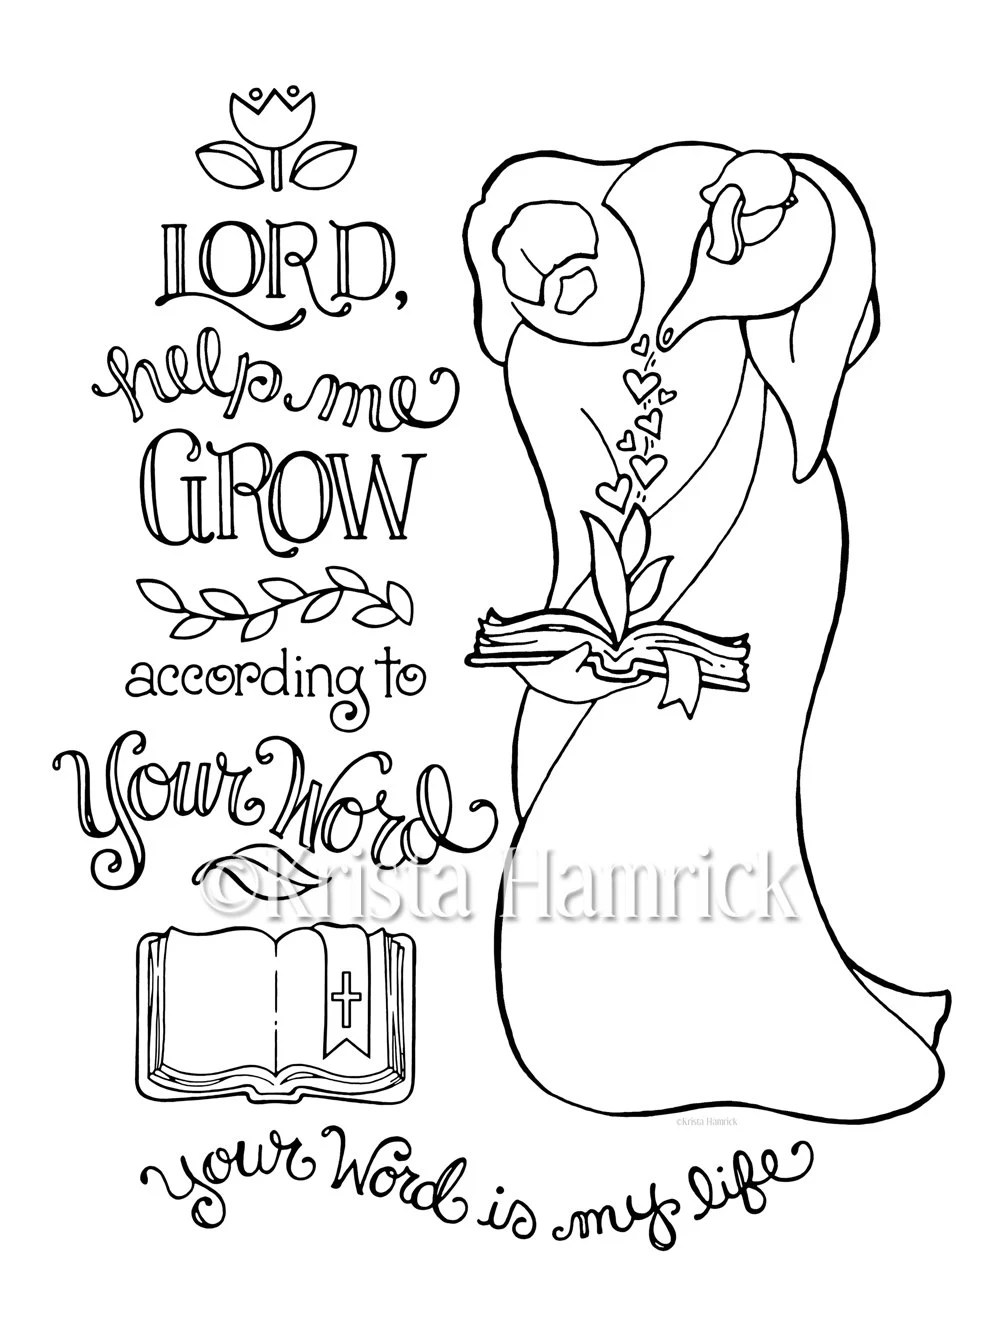 Help Me Grow According to Your Word coloring page 8.5X11